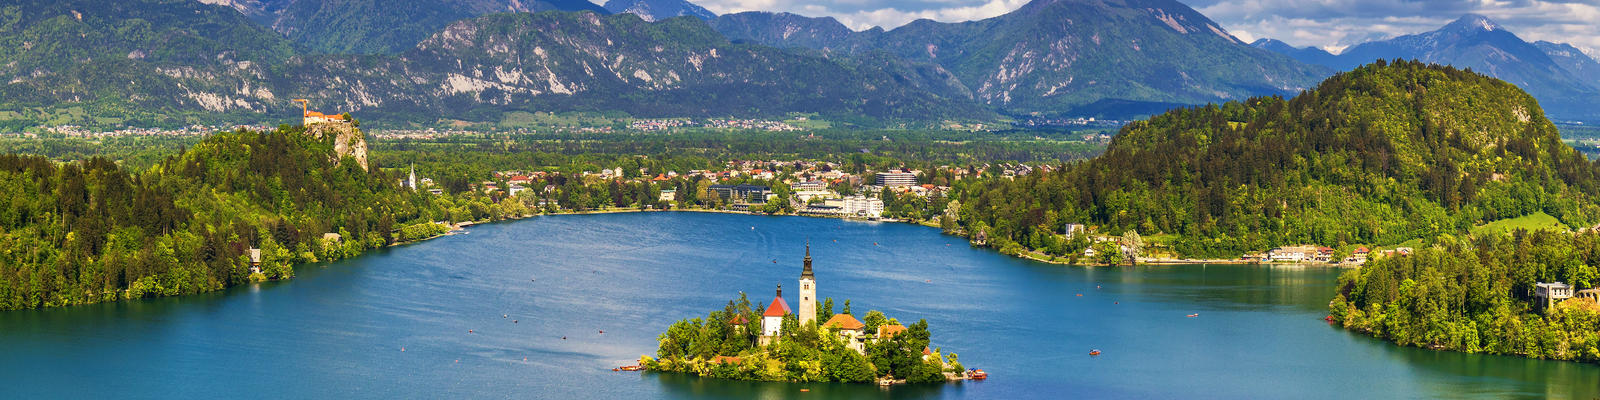 Lake Bled with St. Mary's Church of Assumption on Small Island (Photo: DaLiu/Shutterstock)